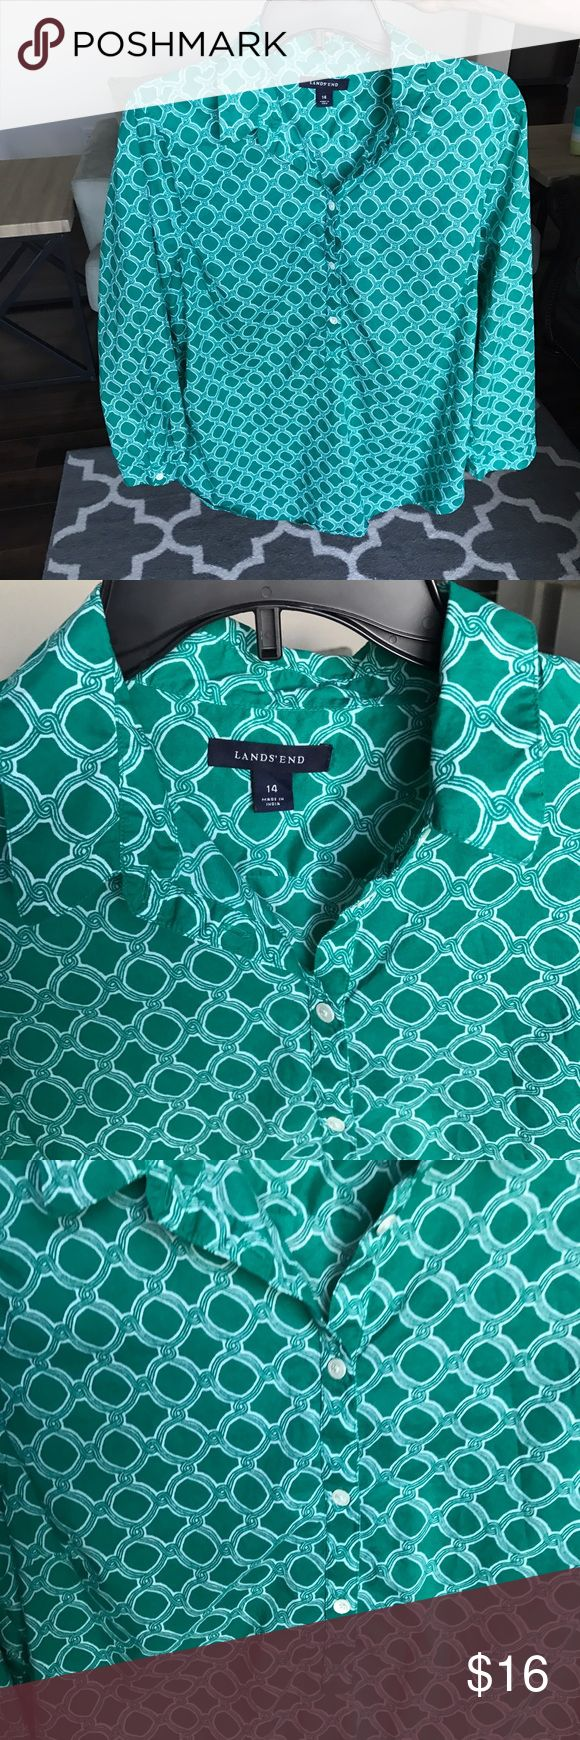 Lands' End Green Top Lands' End Green Geometric Pattern Top.  3/4 sleeve, collared blouse that buttons approximately half way down.  Slightly rounded hem.  Lightweight material; perfect for spring, summer, and fall months.  Looks cute paired with leggings and tall boots.  Gently used.  Stored in smoke and pet free home. Lands' End Tops Button Down Shirts